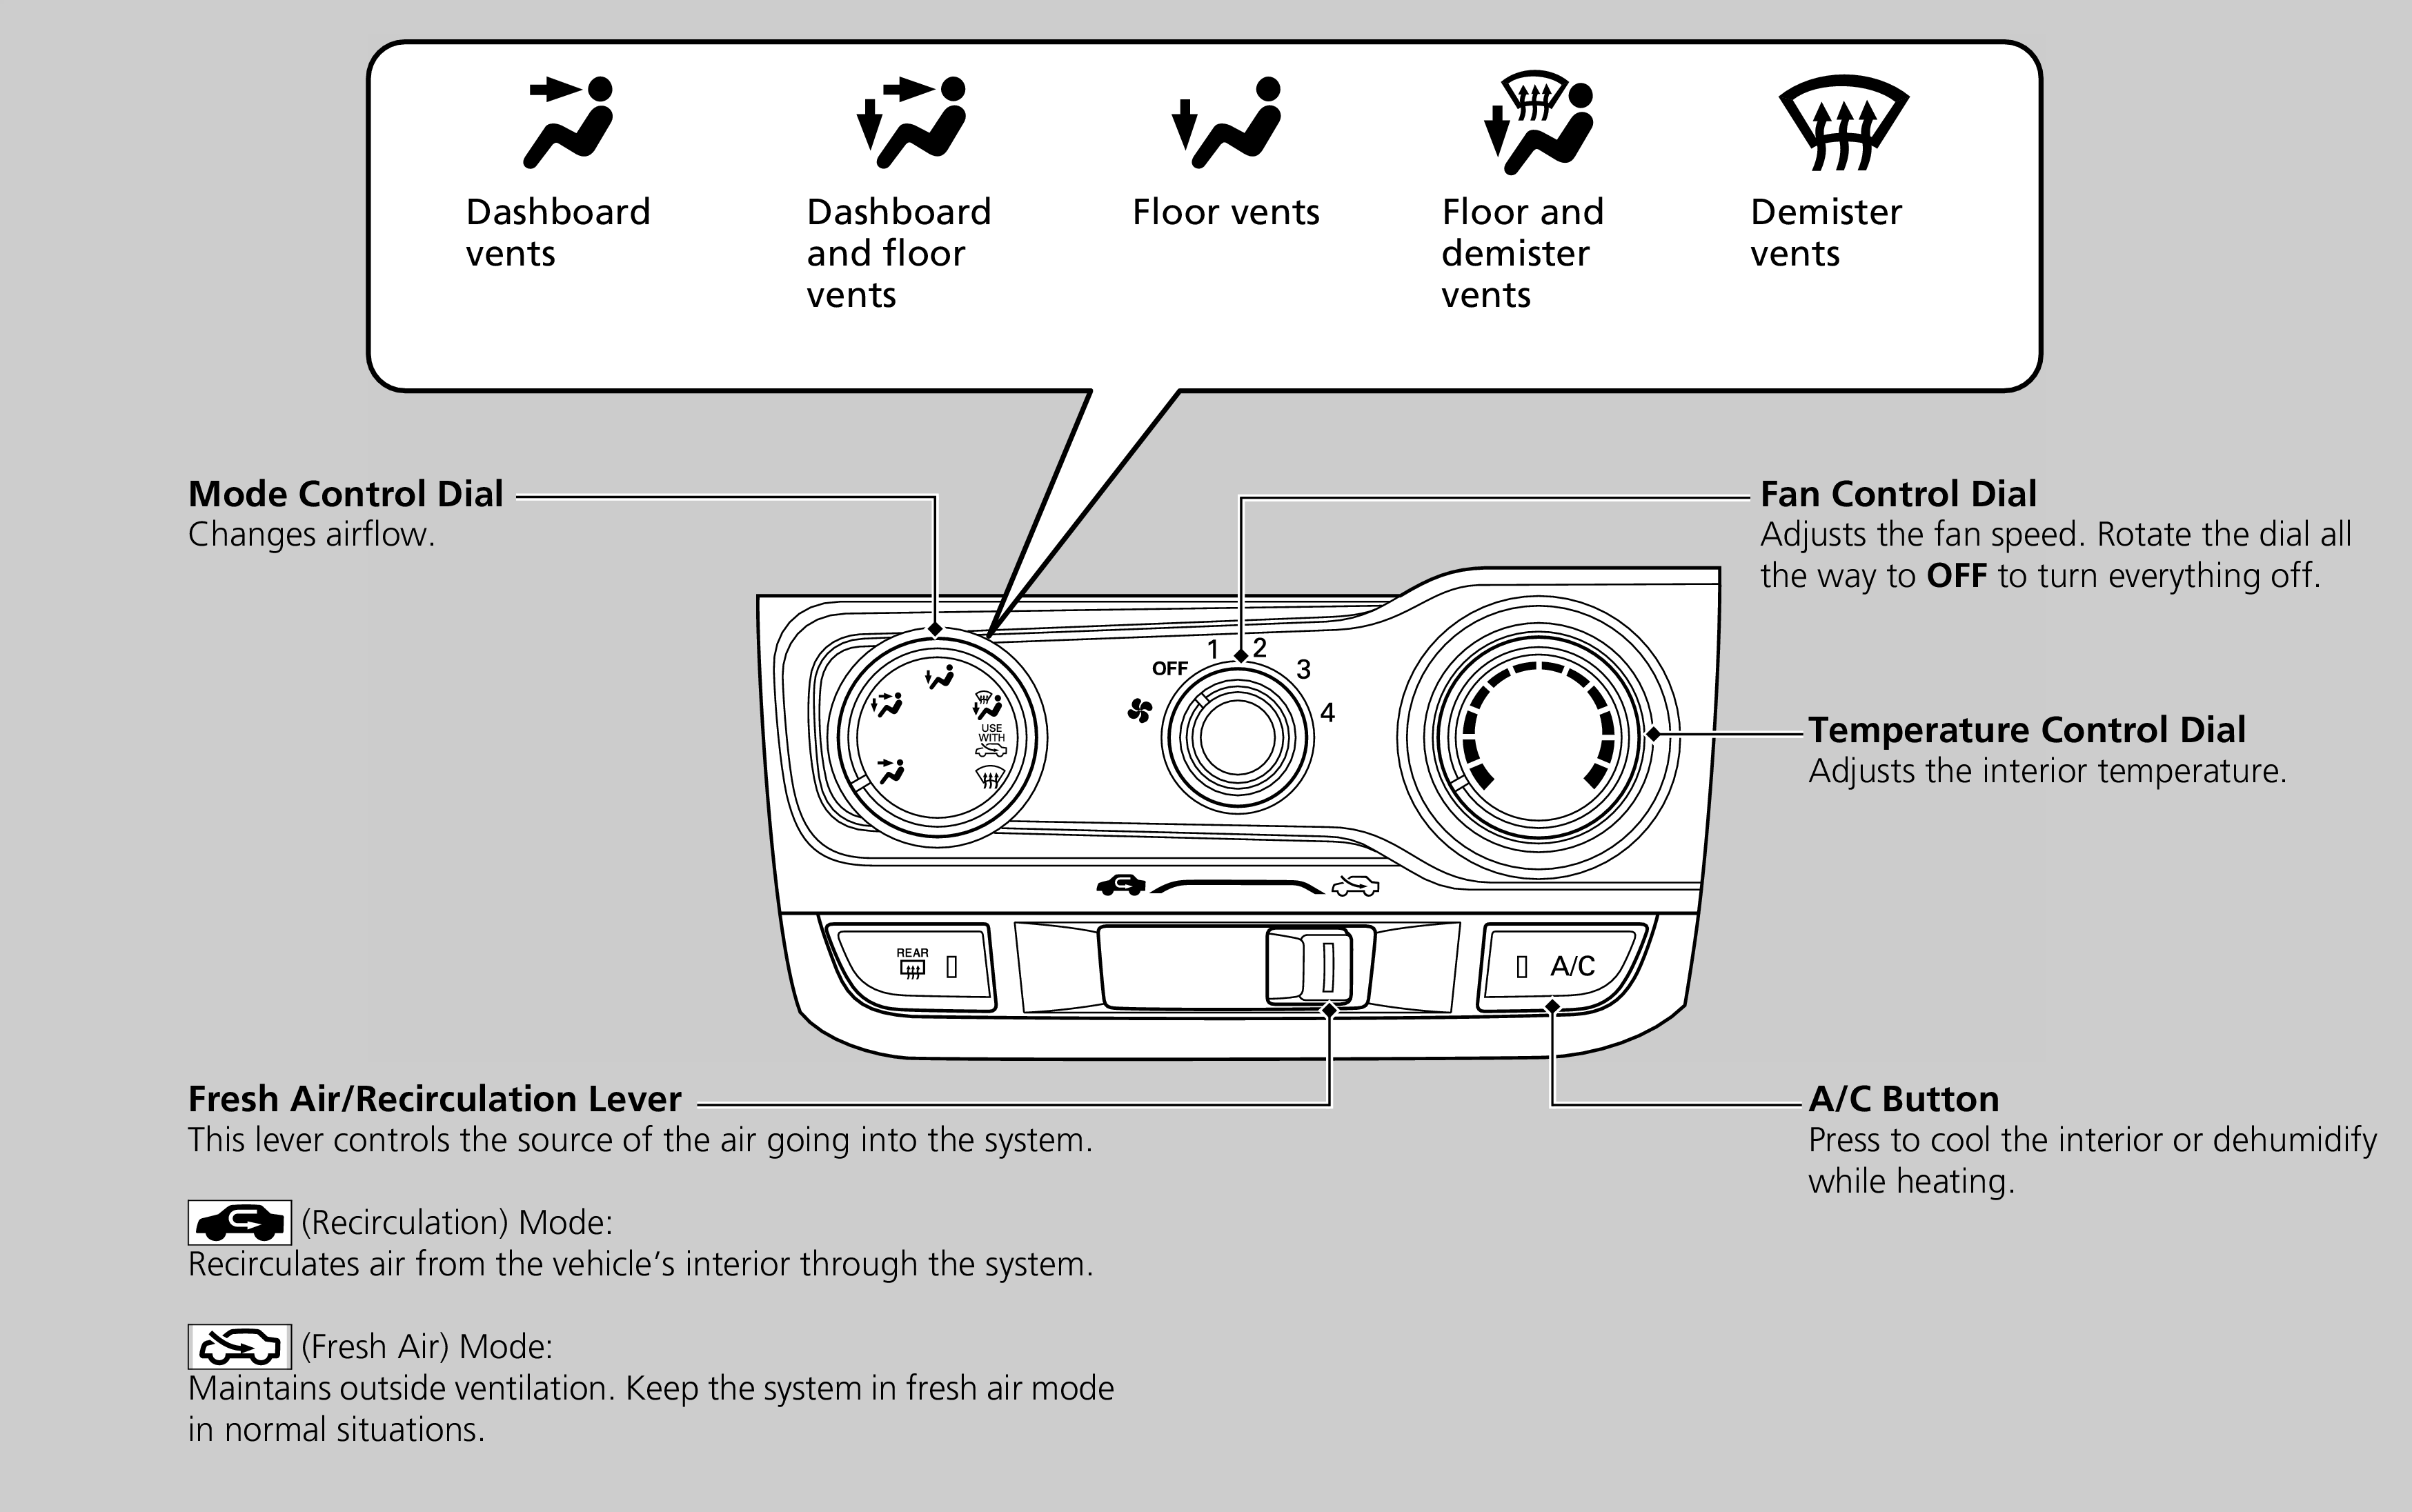 Automotive Ac Diagram Control Wiring 2002 Cadillac Deville A C Clutch Using Vents Heating And Jazz 2016 Honda Circuit